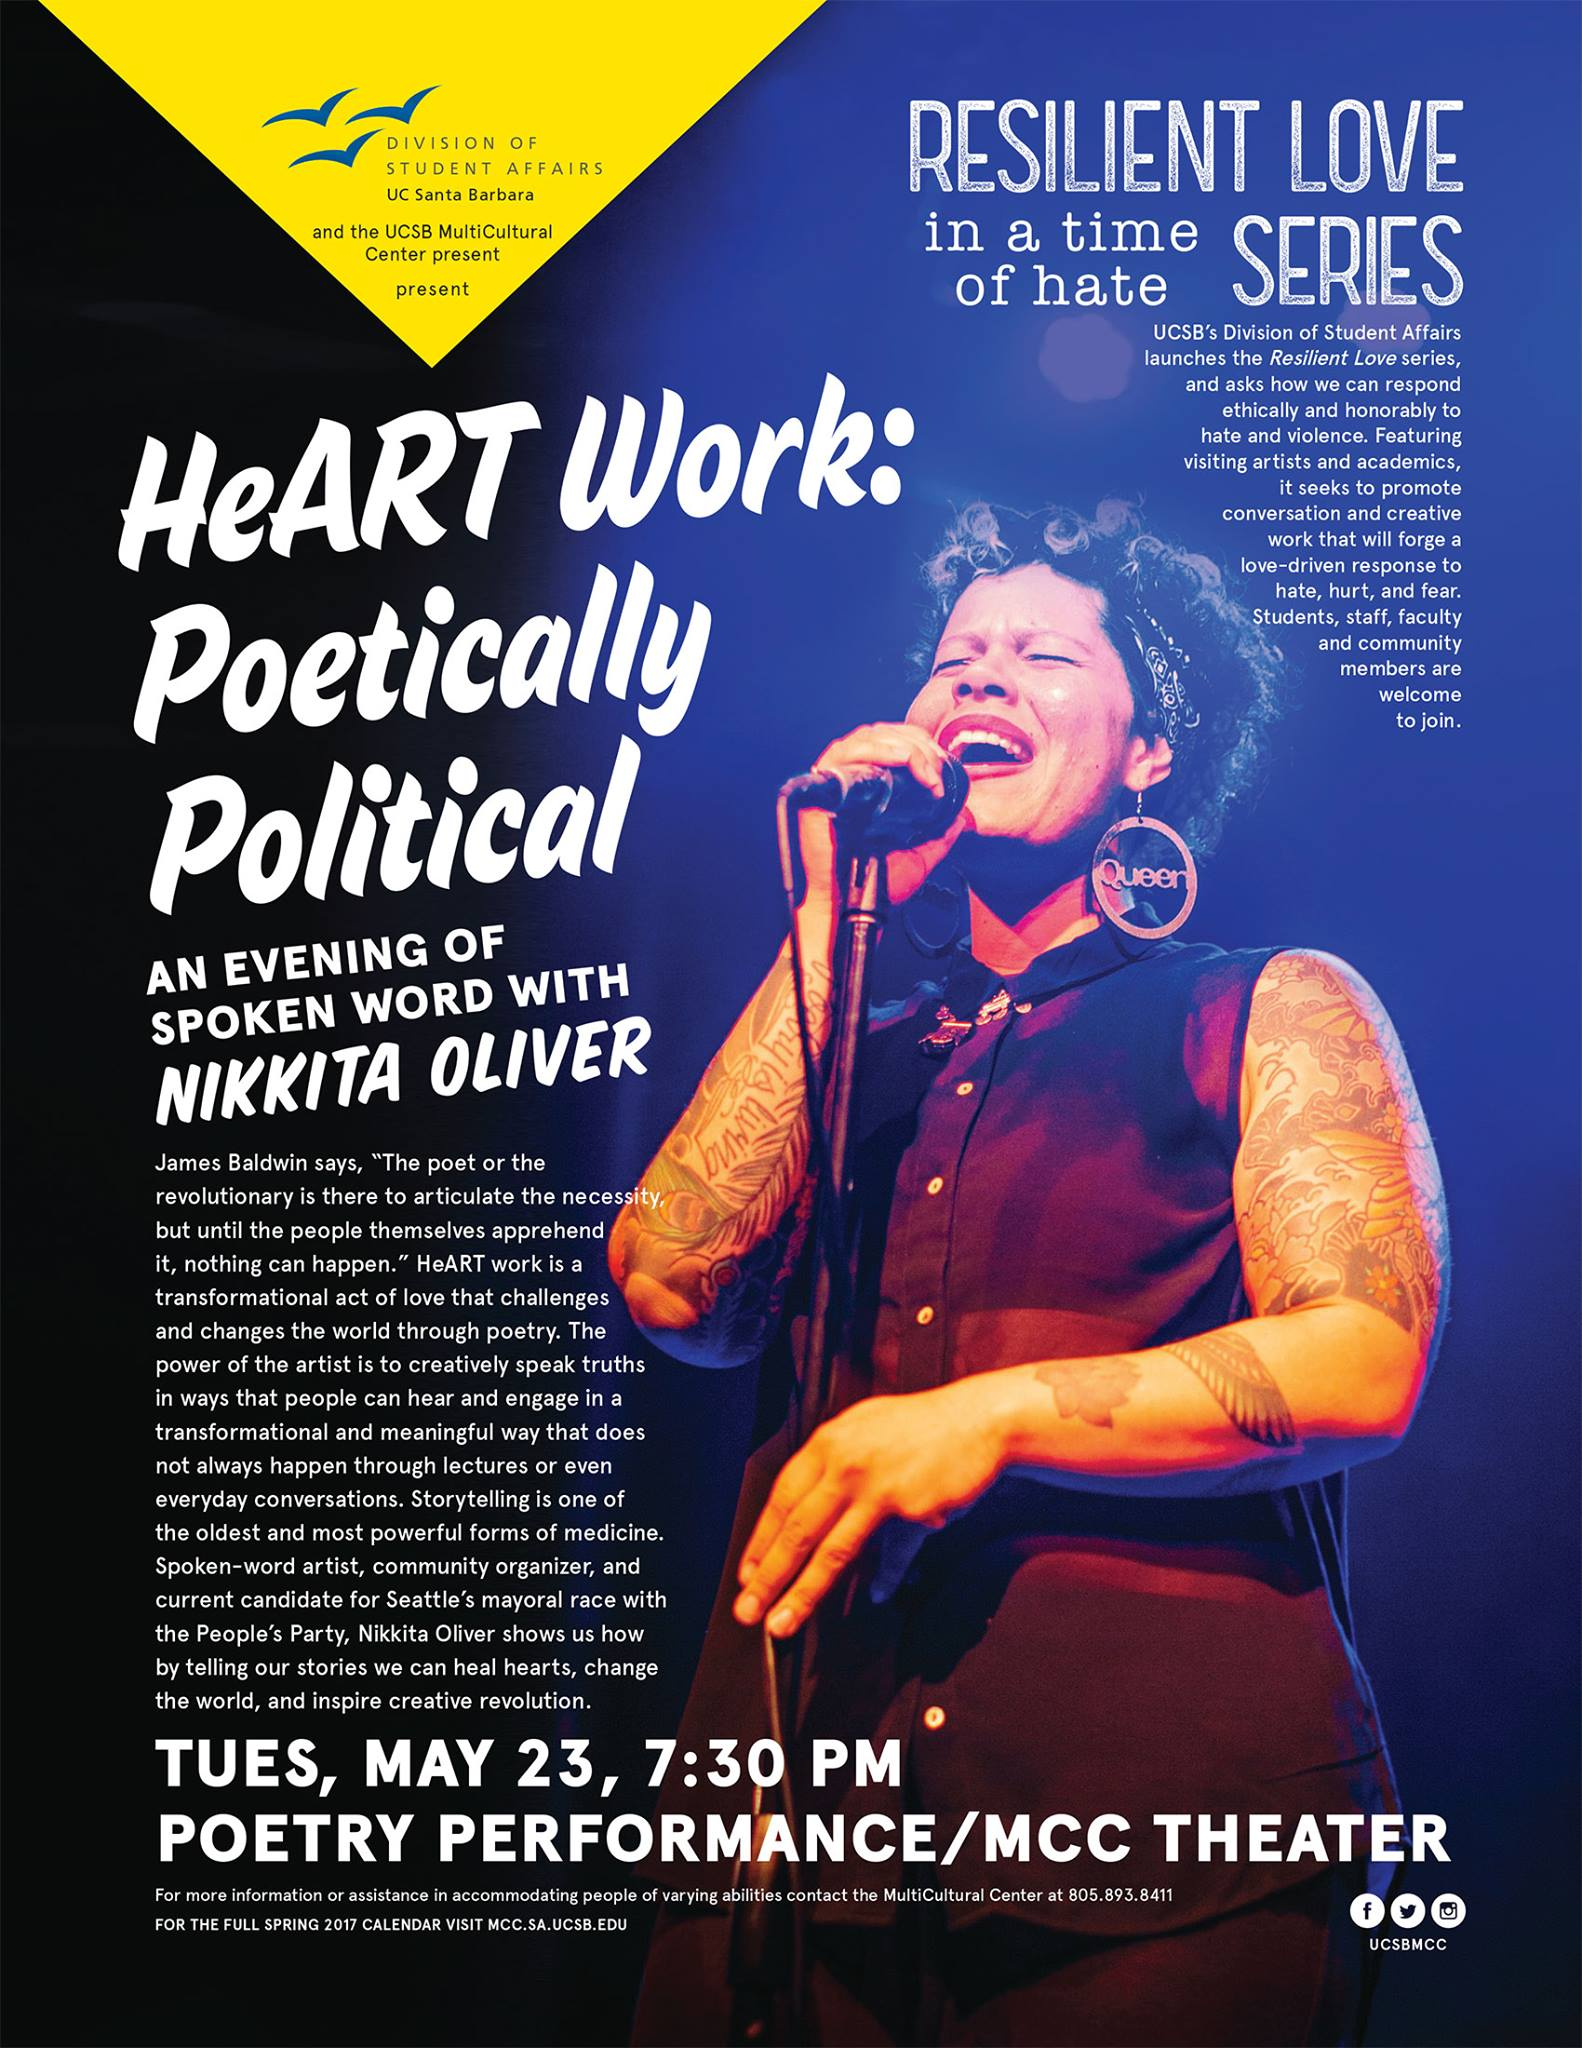 HeART Work: Poetically Political Spoken Word with Nikkita Oliver